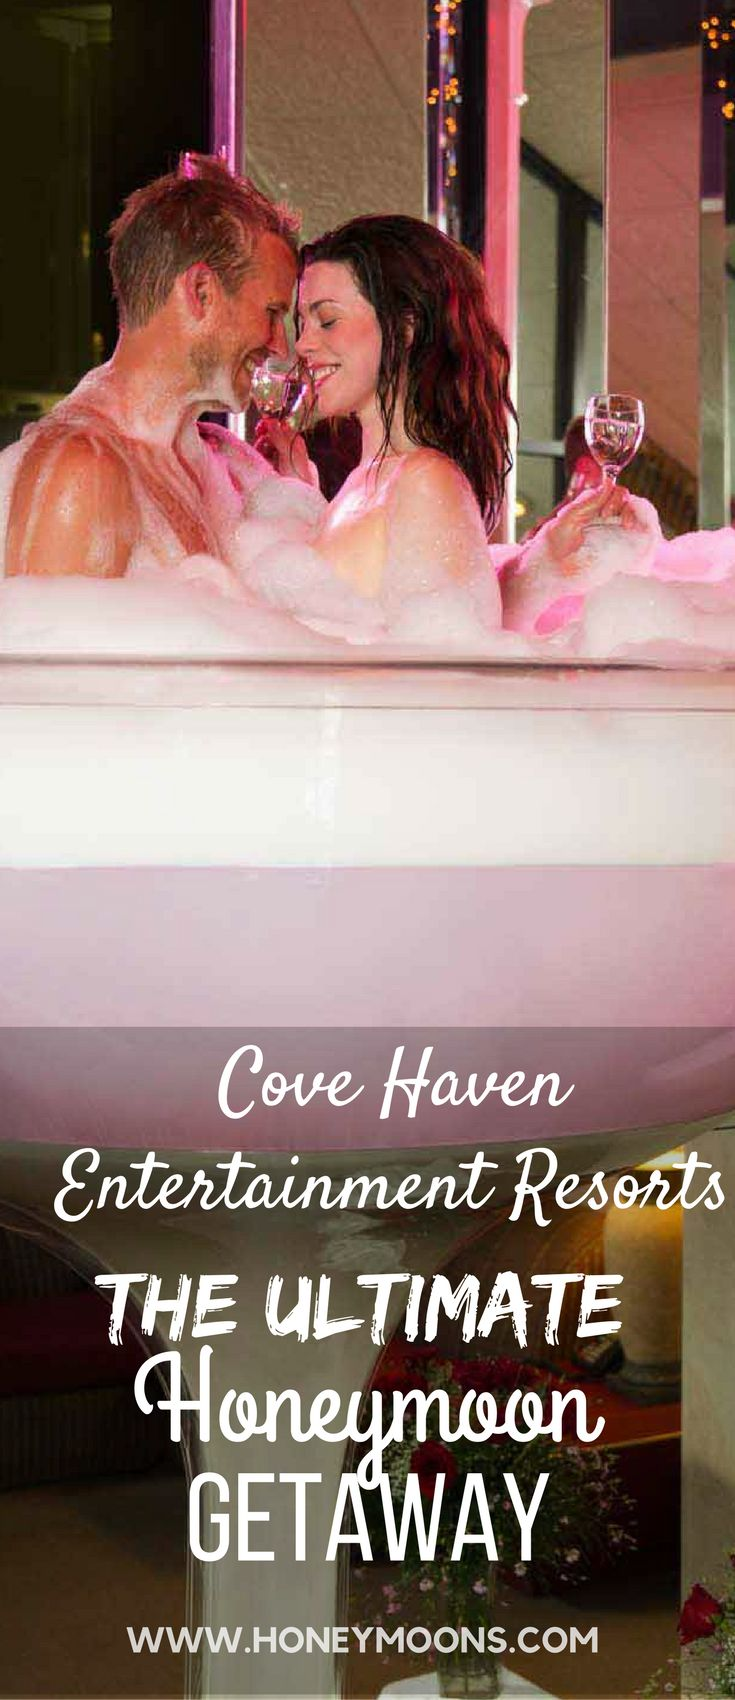 Make it an unforgettable honeymoon with an array of special touches provided by Cove Haven Entertainment Resorts' Ultimate Honeymoon Packages. Click through to see what their honeymoon packages offer!